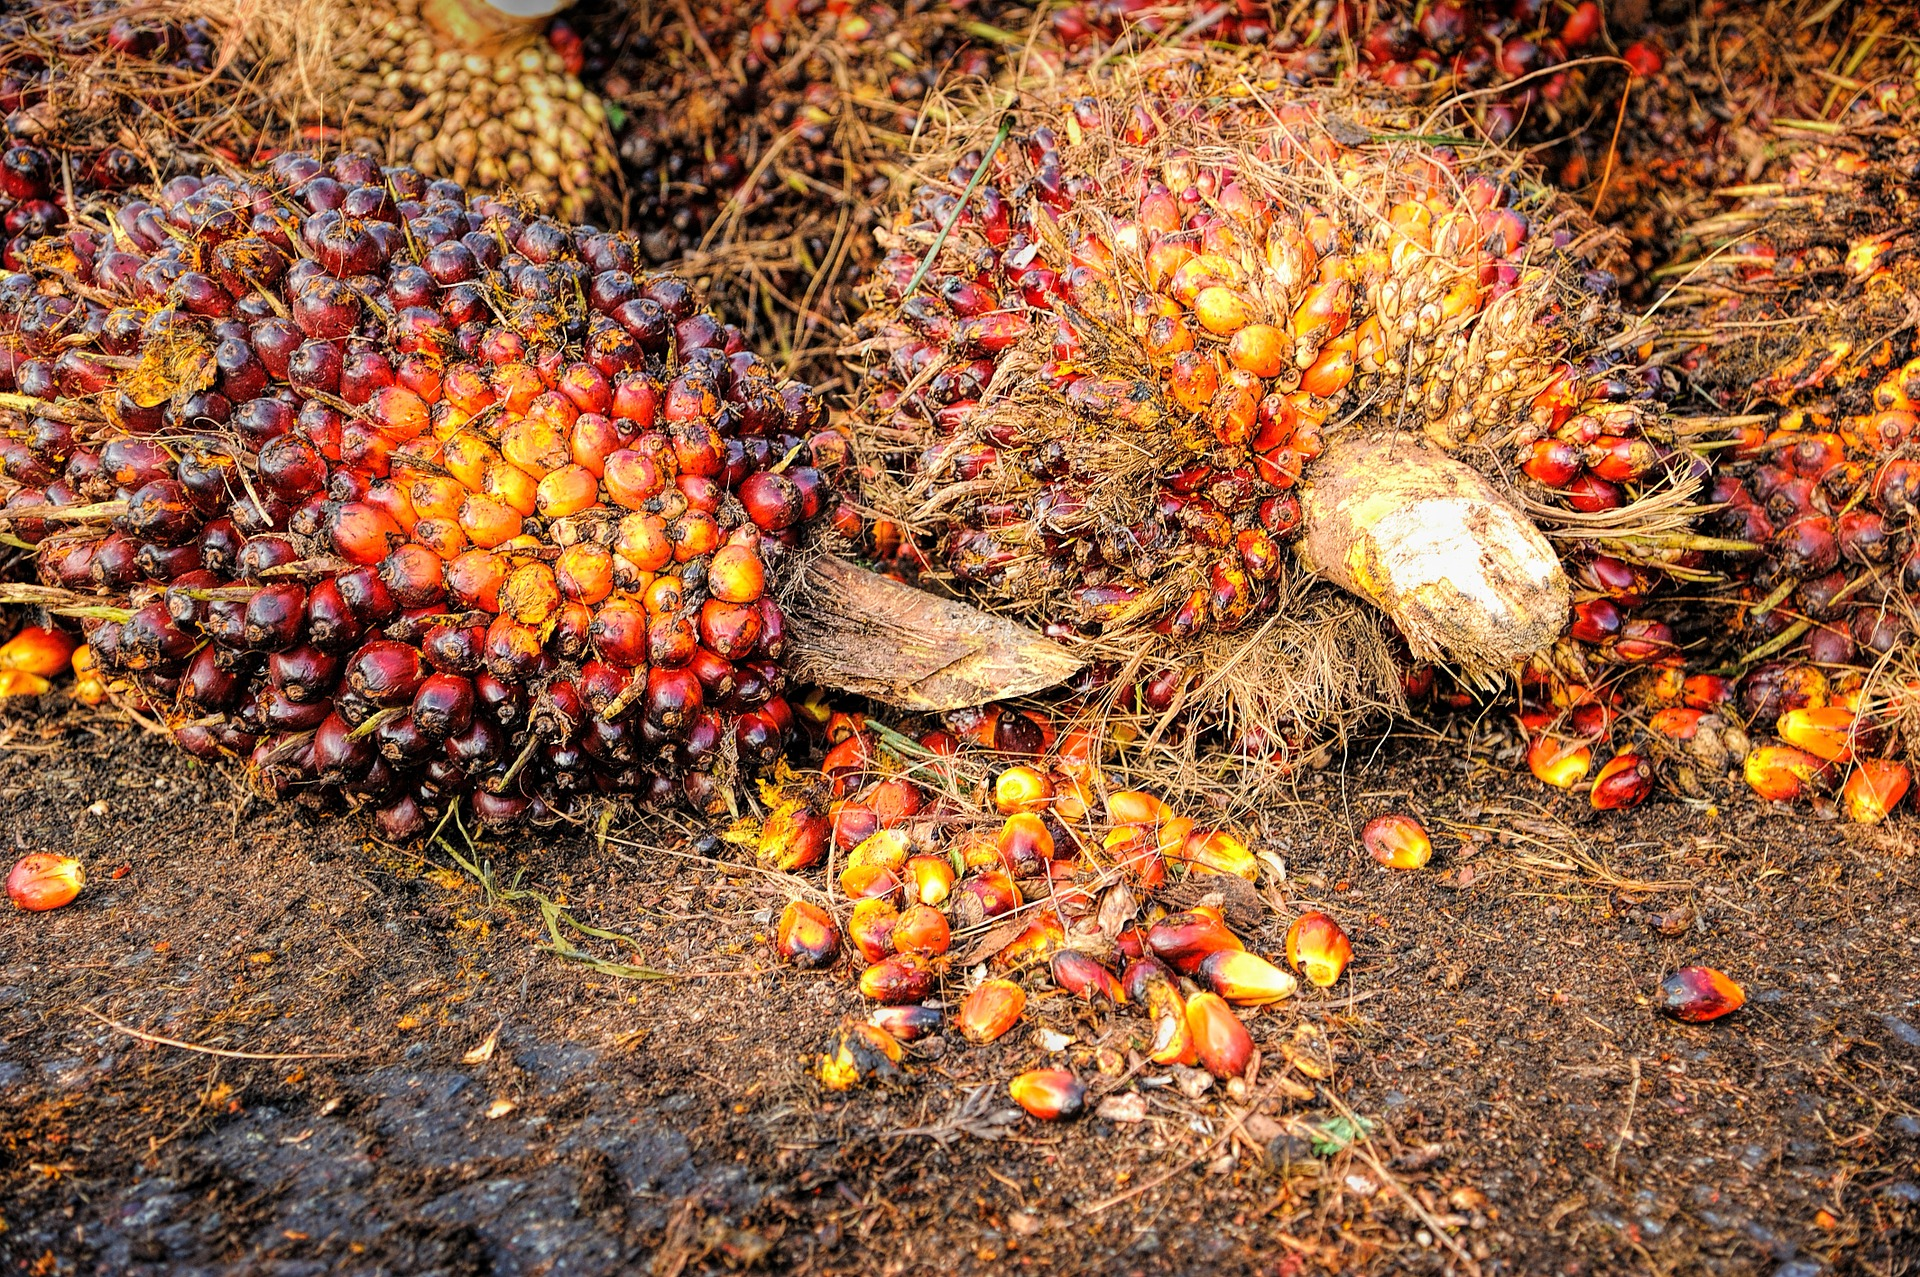 Malaysia's responses to Allegations of Forced Labour in Palm Oil Ban